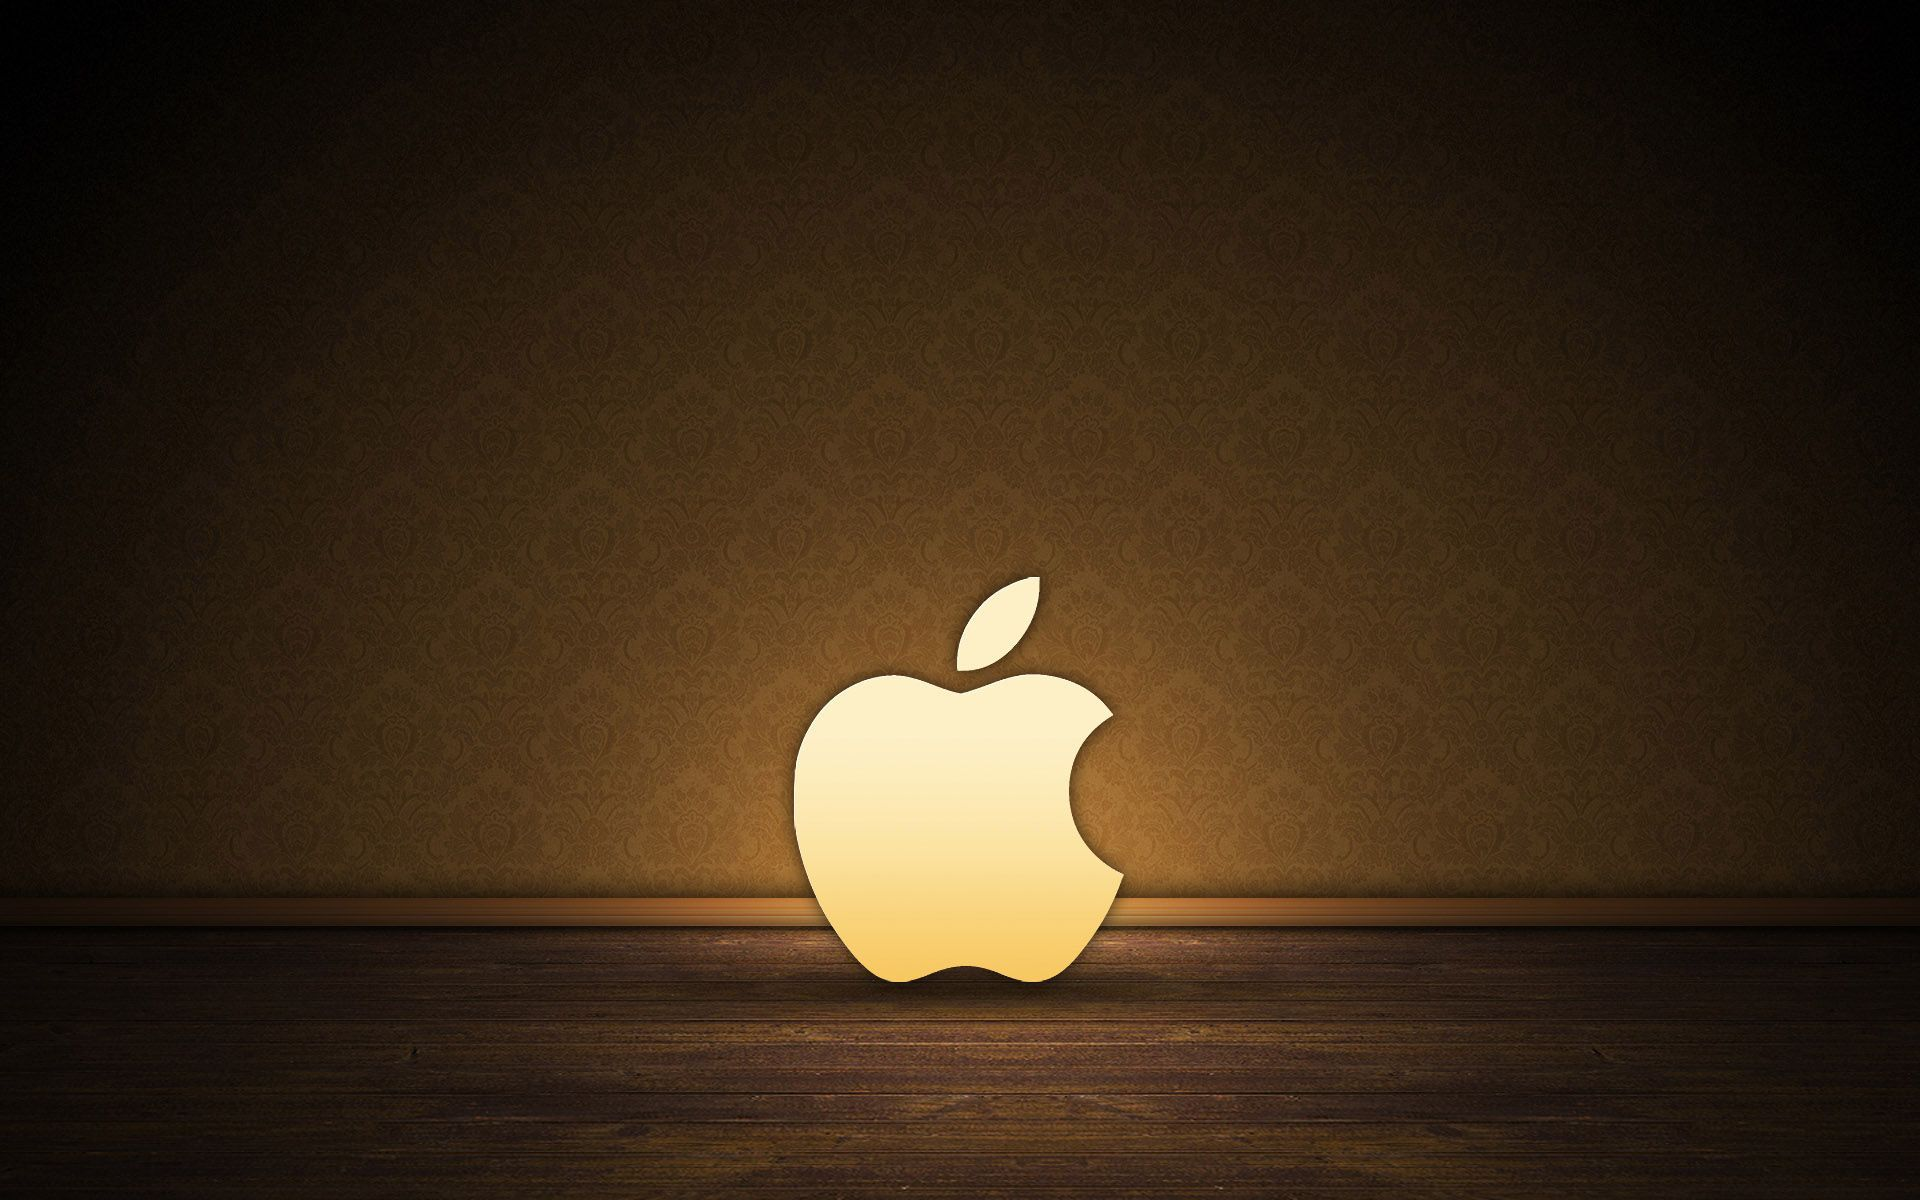 1920x1200 Golden Apple Graphic | HD Brands and Logos Wallpapers for Mobile and ...